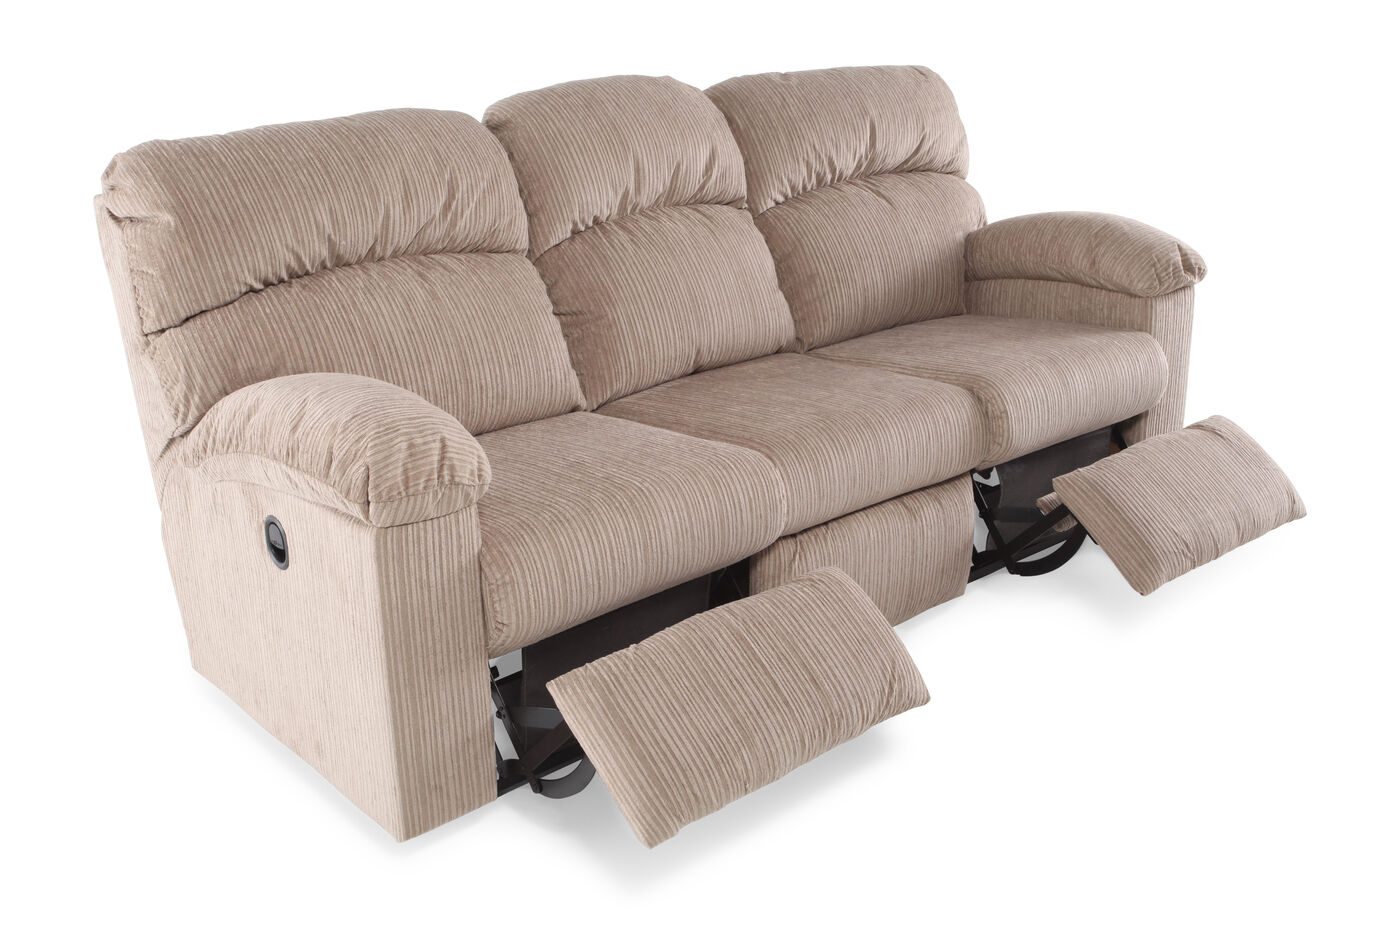 85 5 corduroy reclining sofa in tan mathis brothers furniture. Black Bedroom Furniture Sets. Home Design Ideas